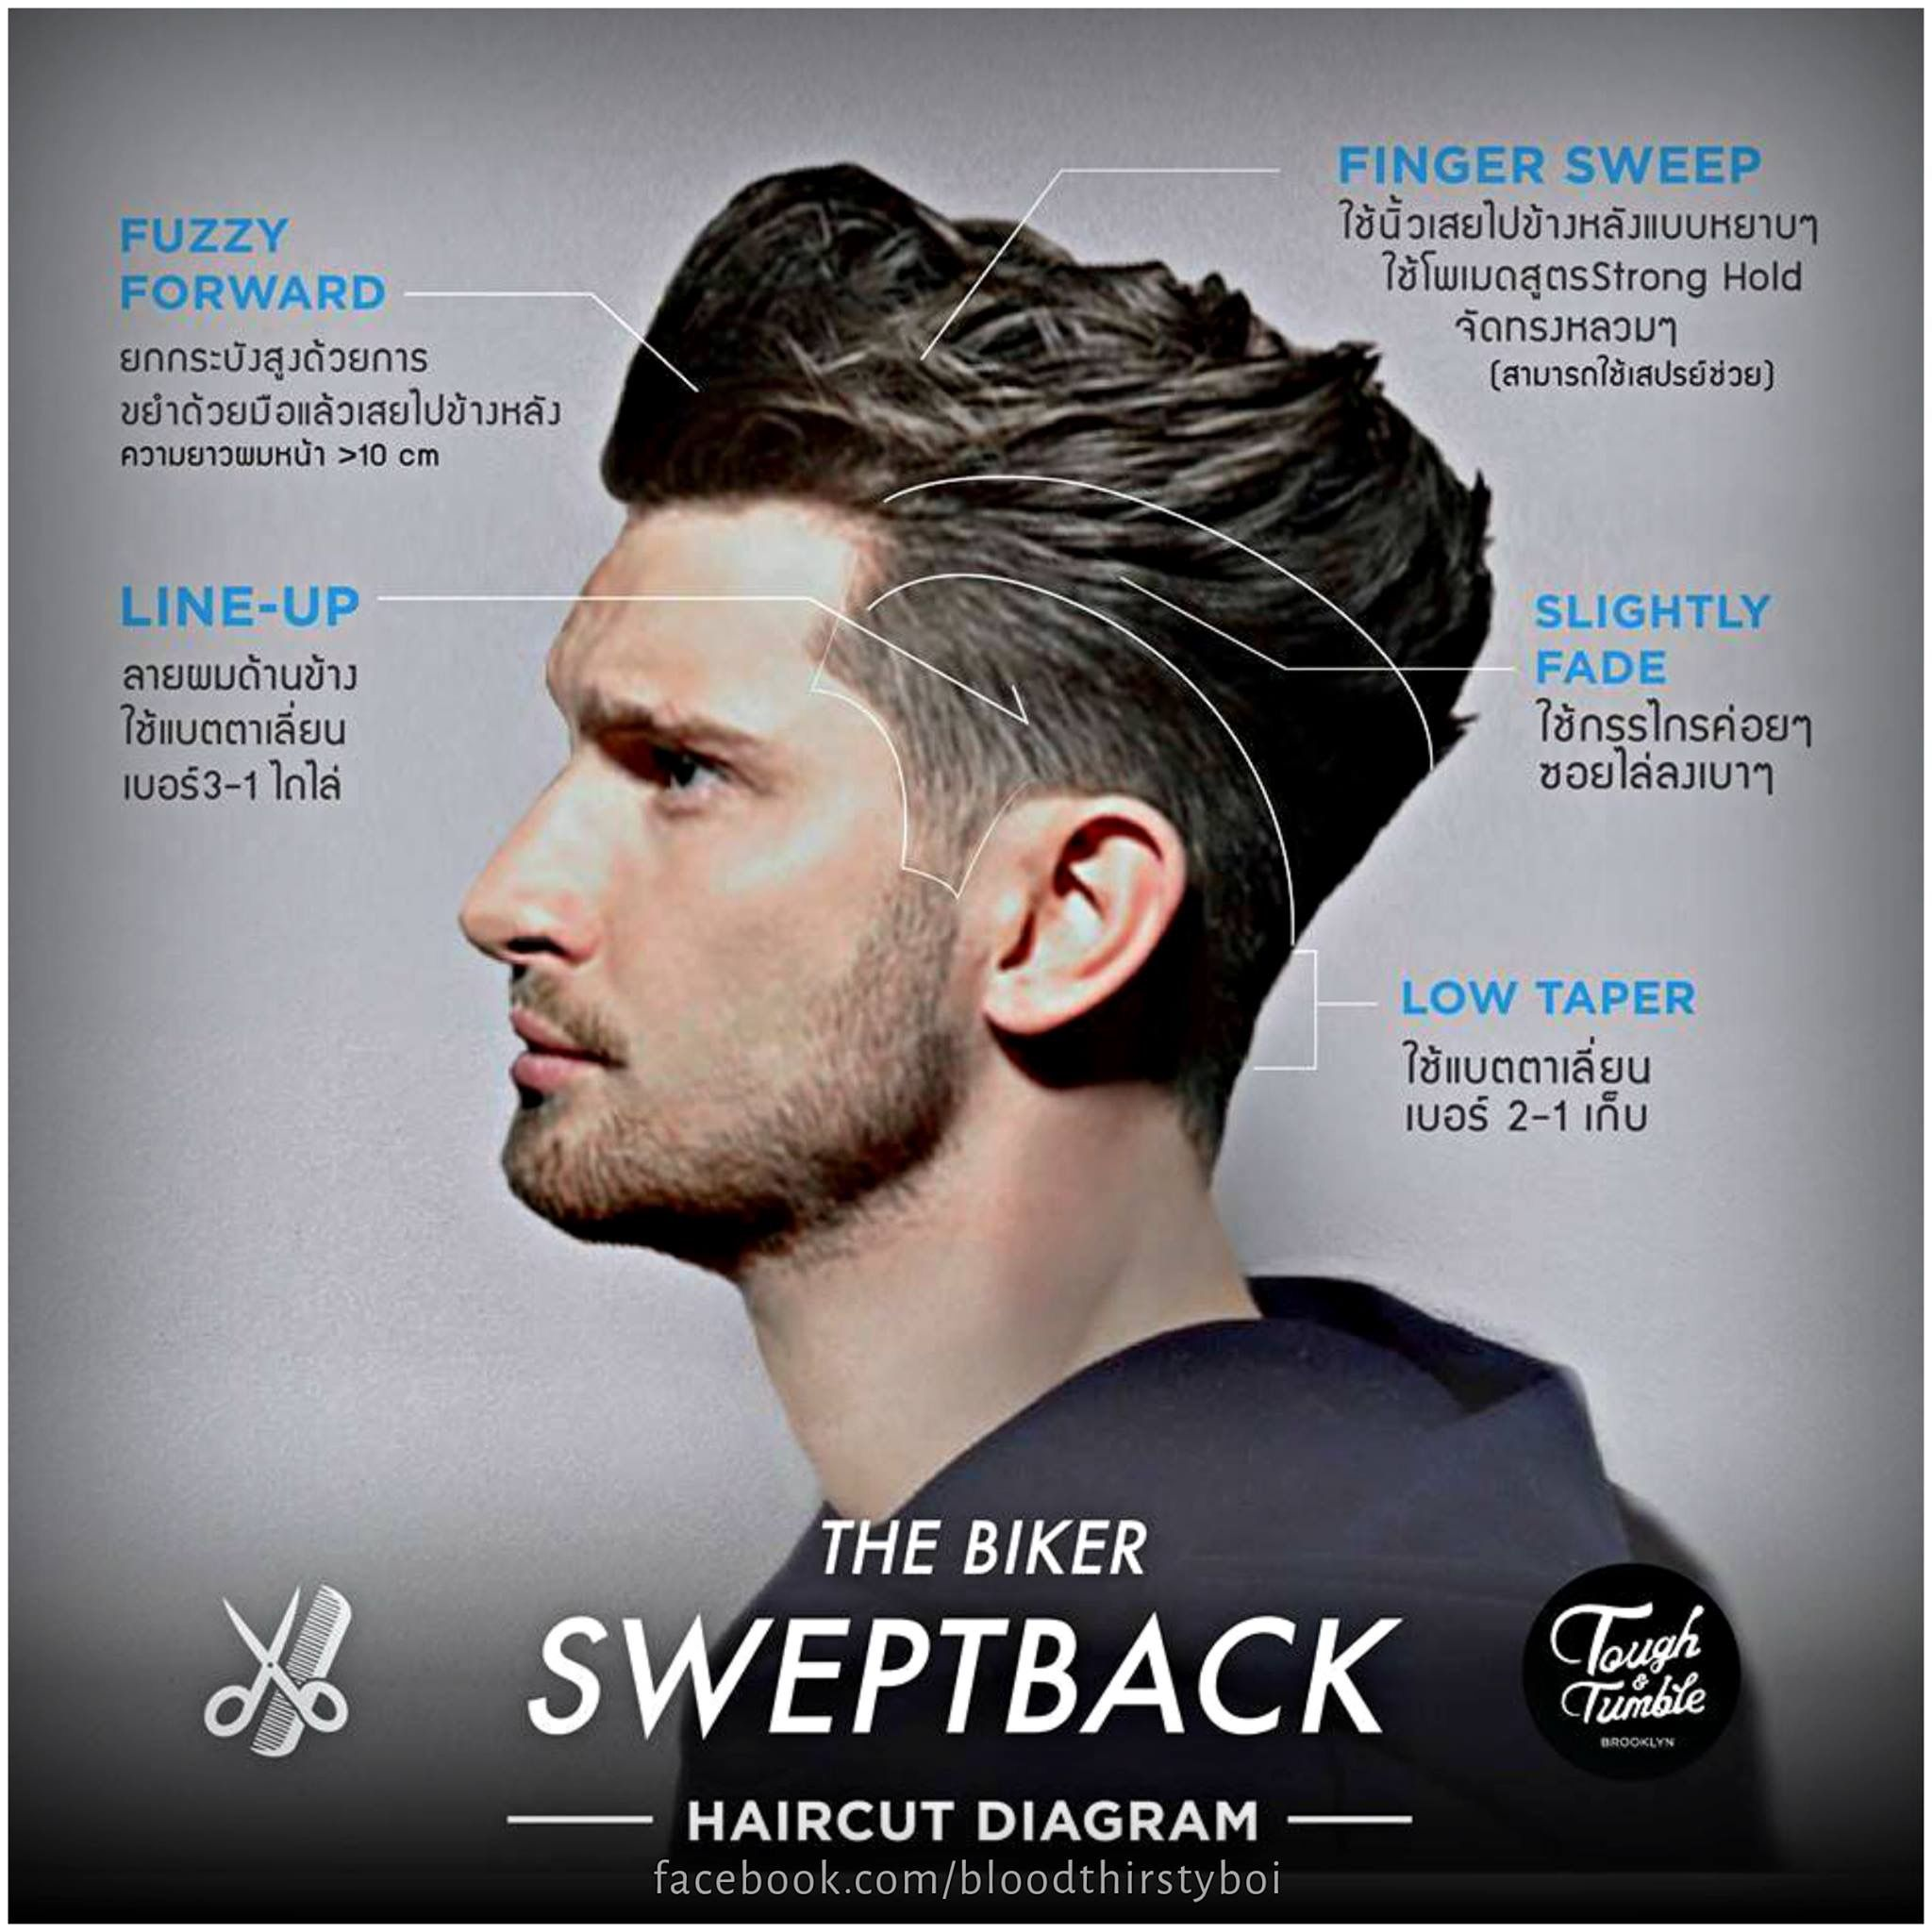 Men s disconnected undercut from schwarzkopf professional - Explore Thick Hairstyles And More